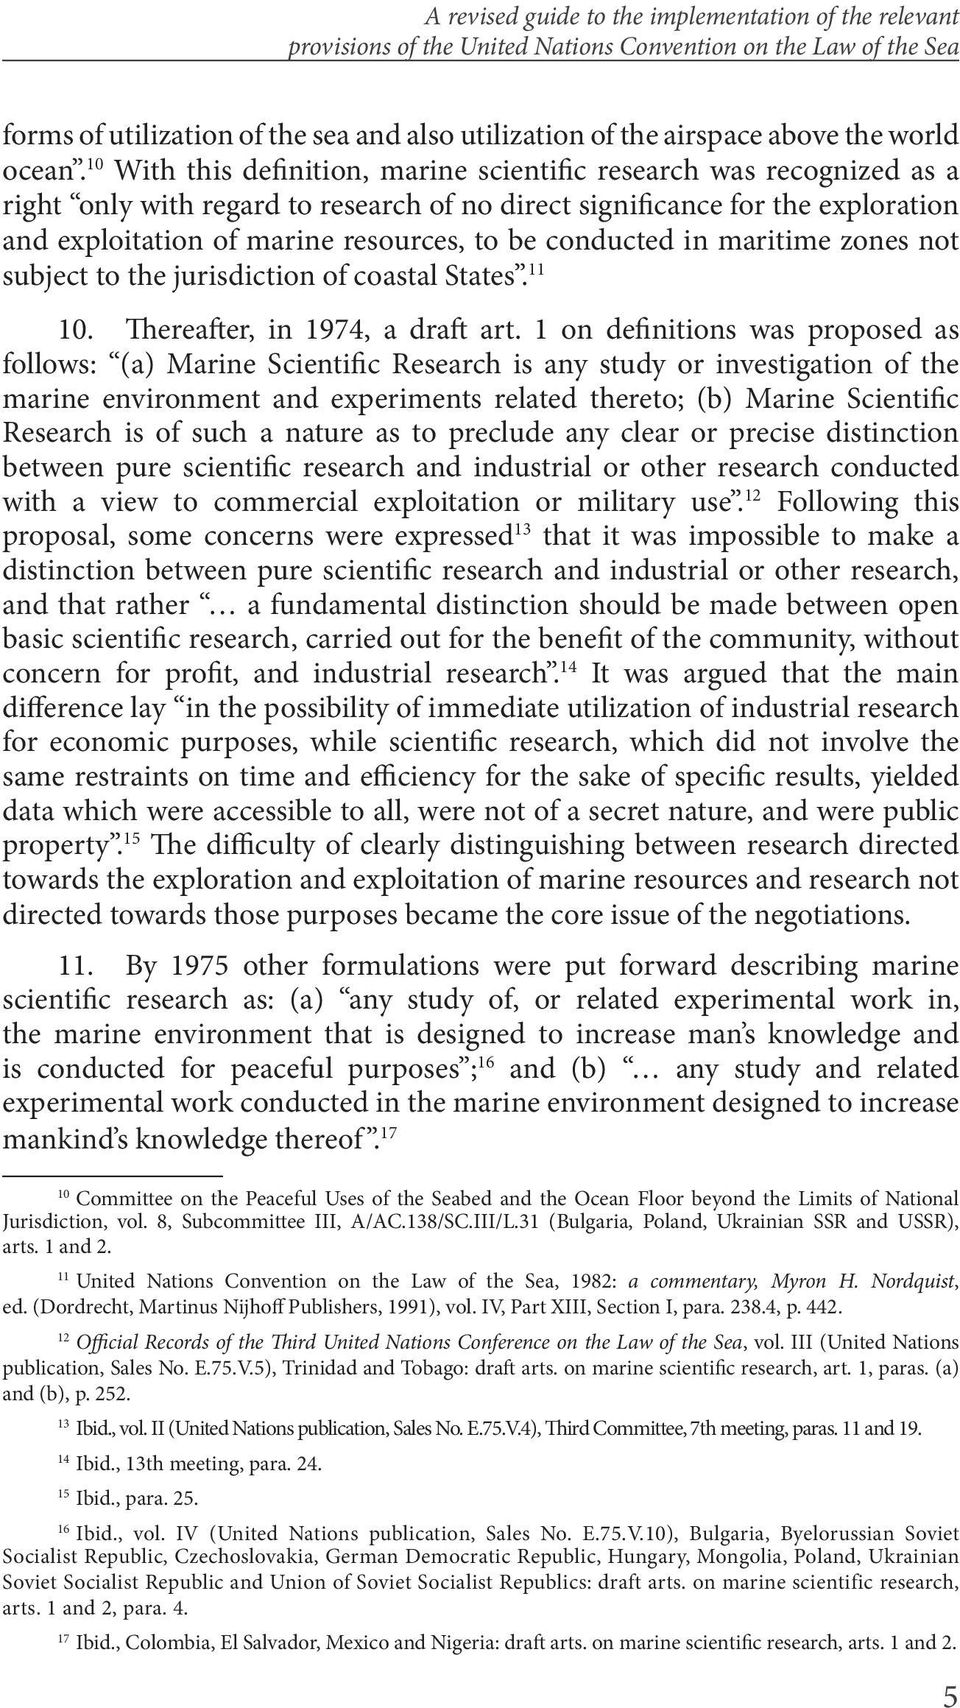 10 With this definition, marine scientific research was recognized as a right only with regard to research of no direct significance for the exploration and exploitation of marine resources, to be